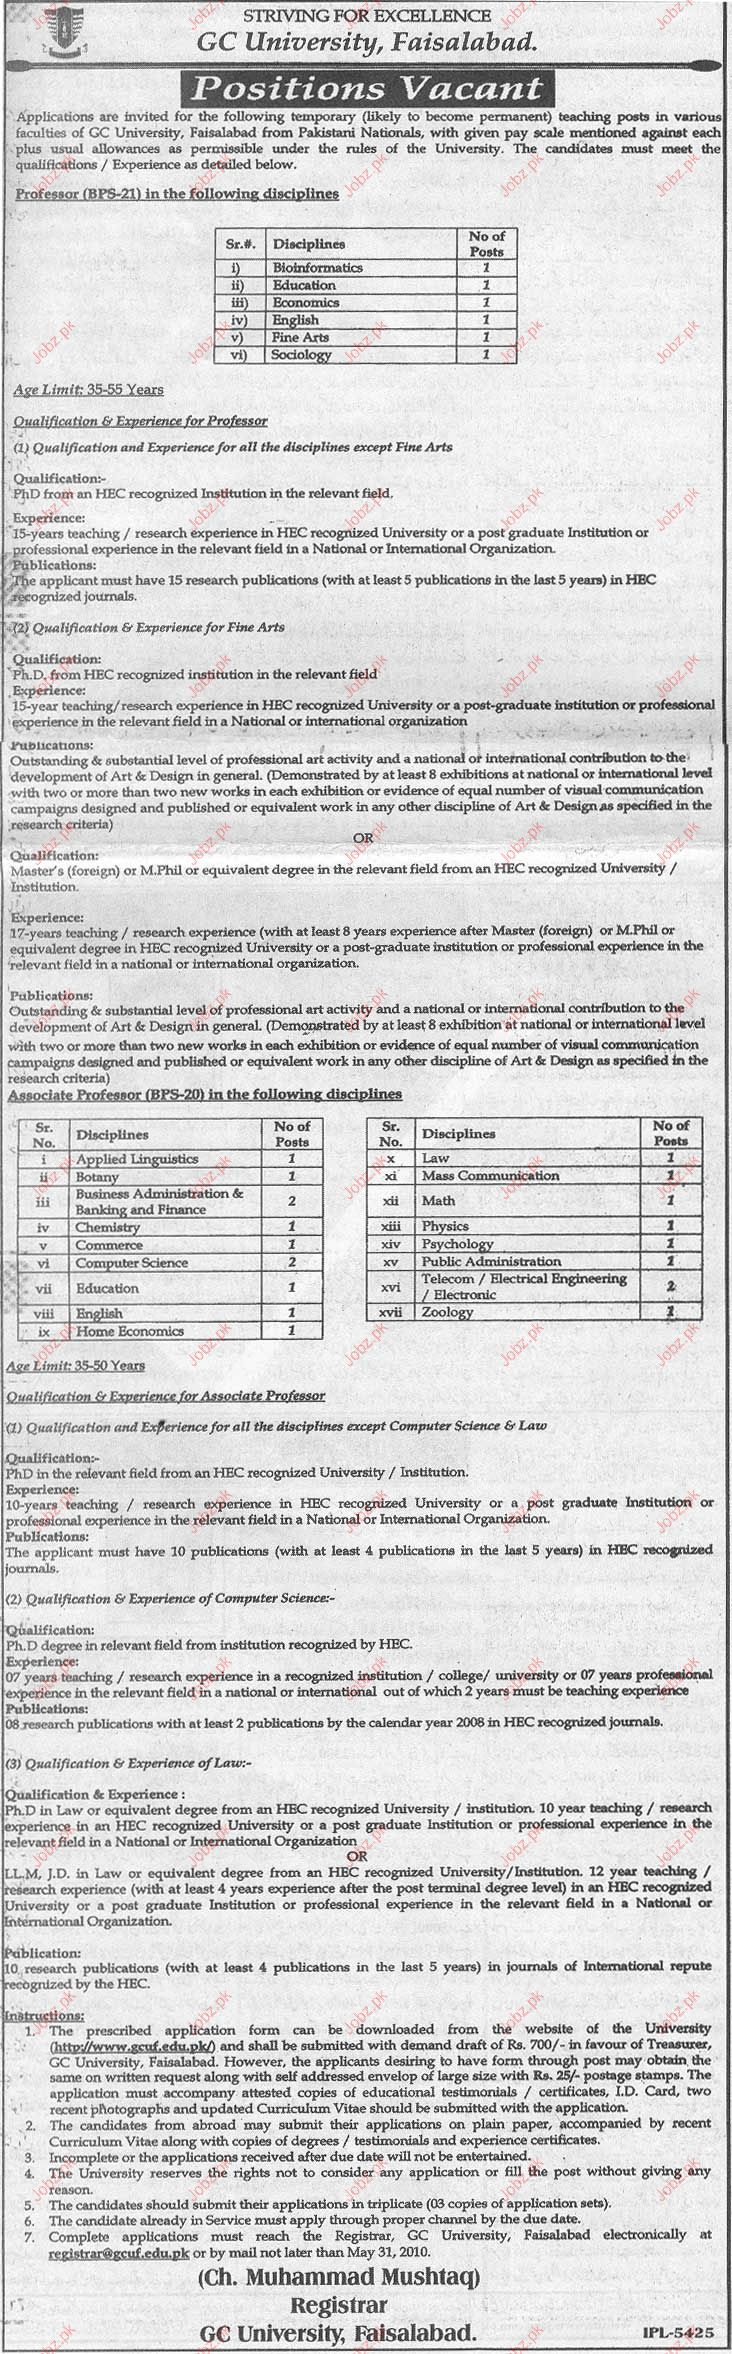 Faculty Required in GC University